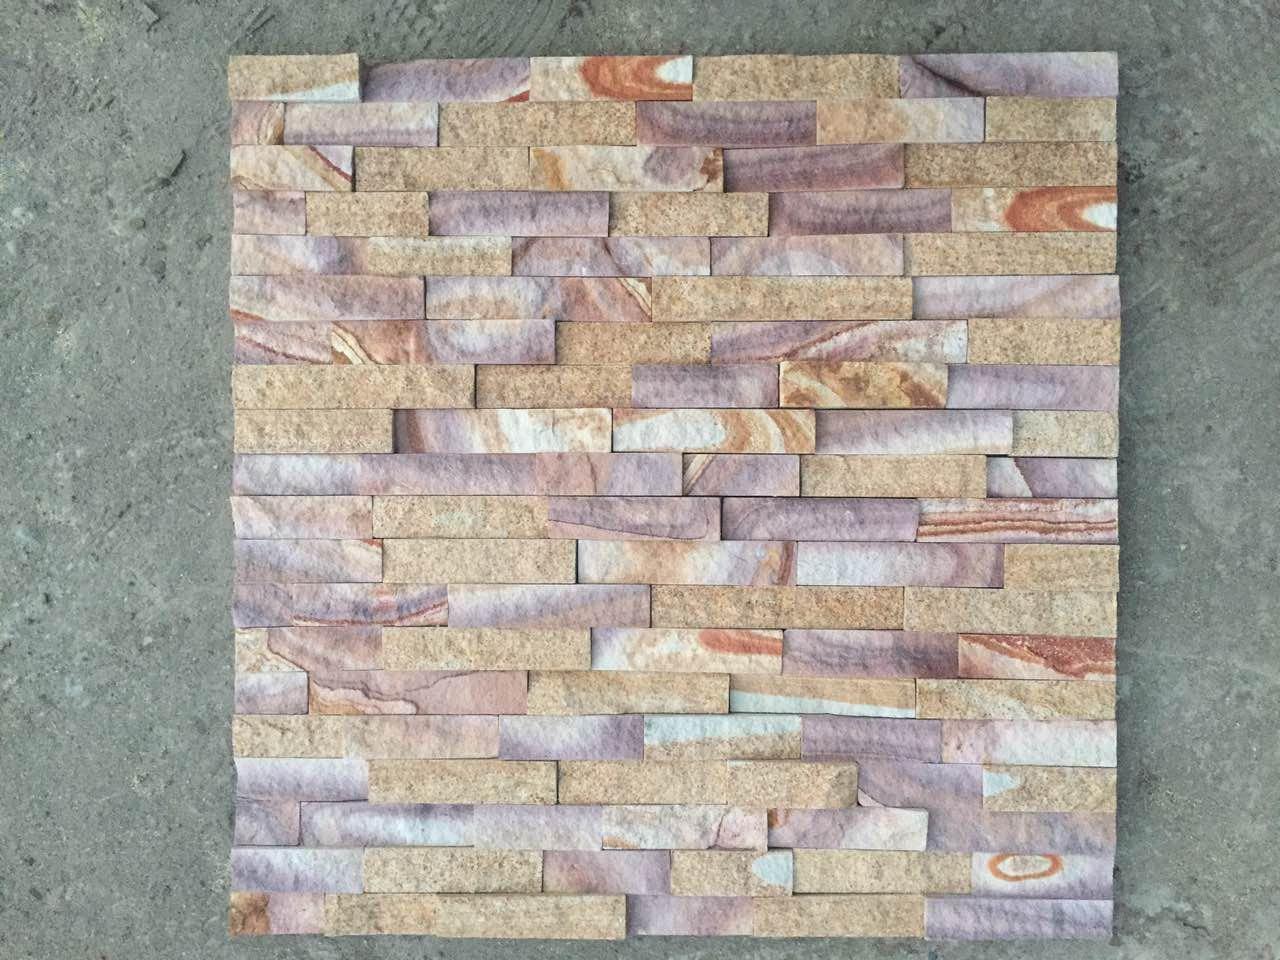 Colorful sandstone Culture stone 60x15cm